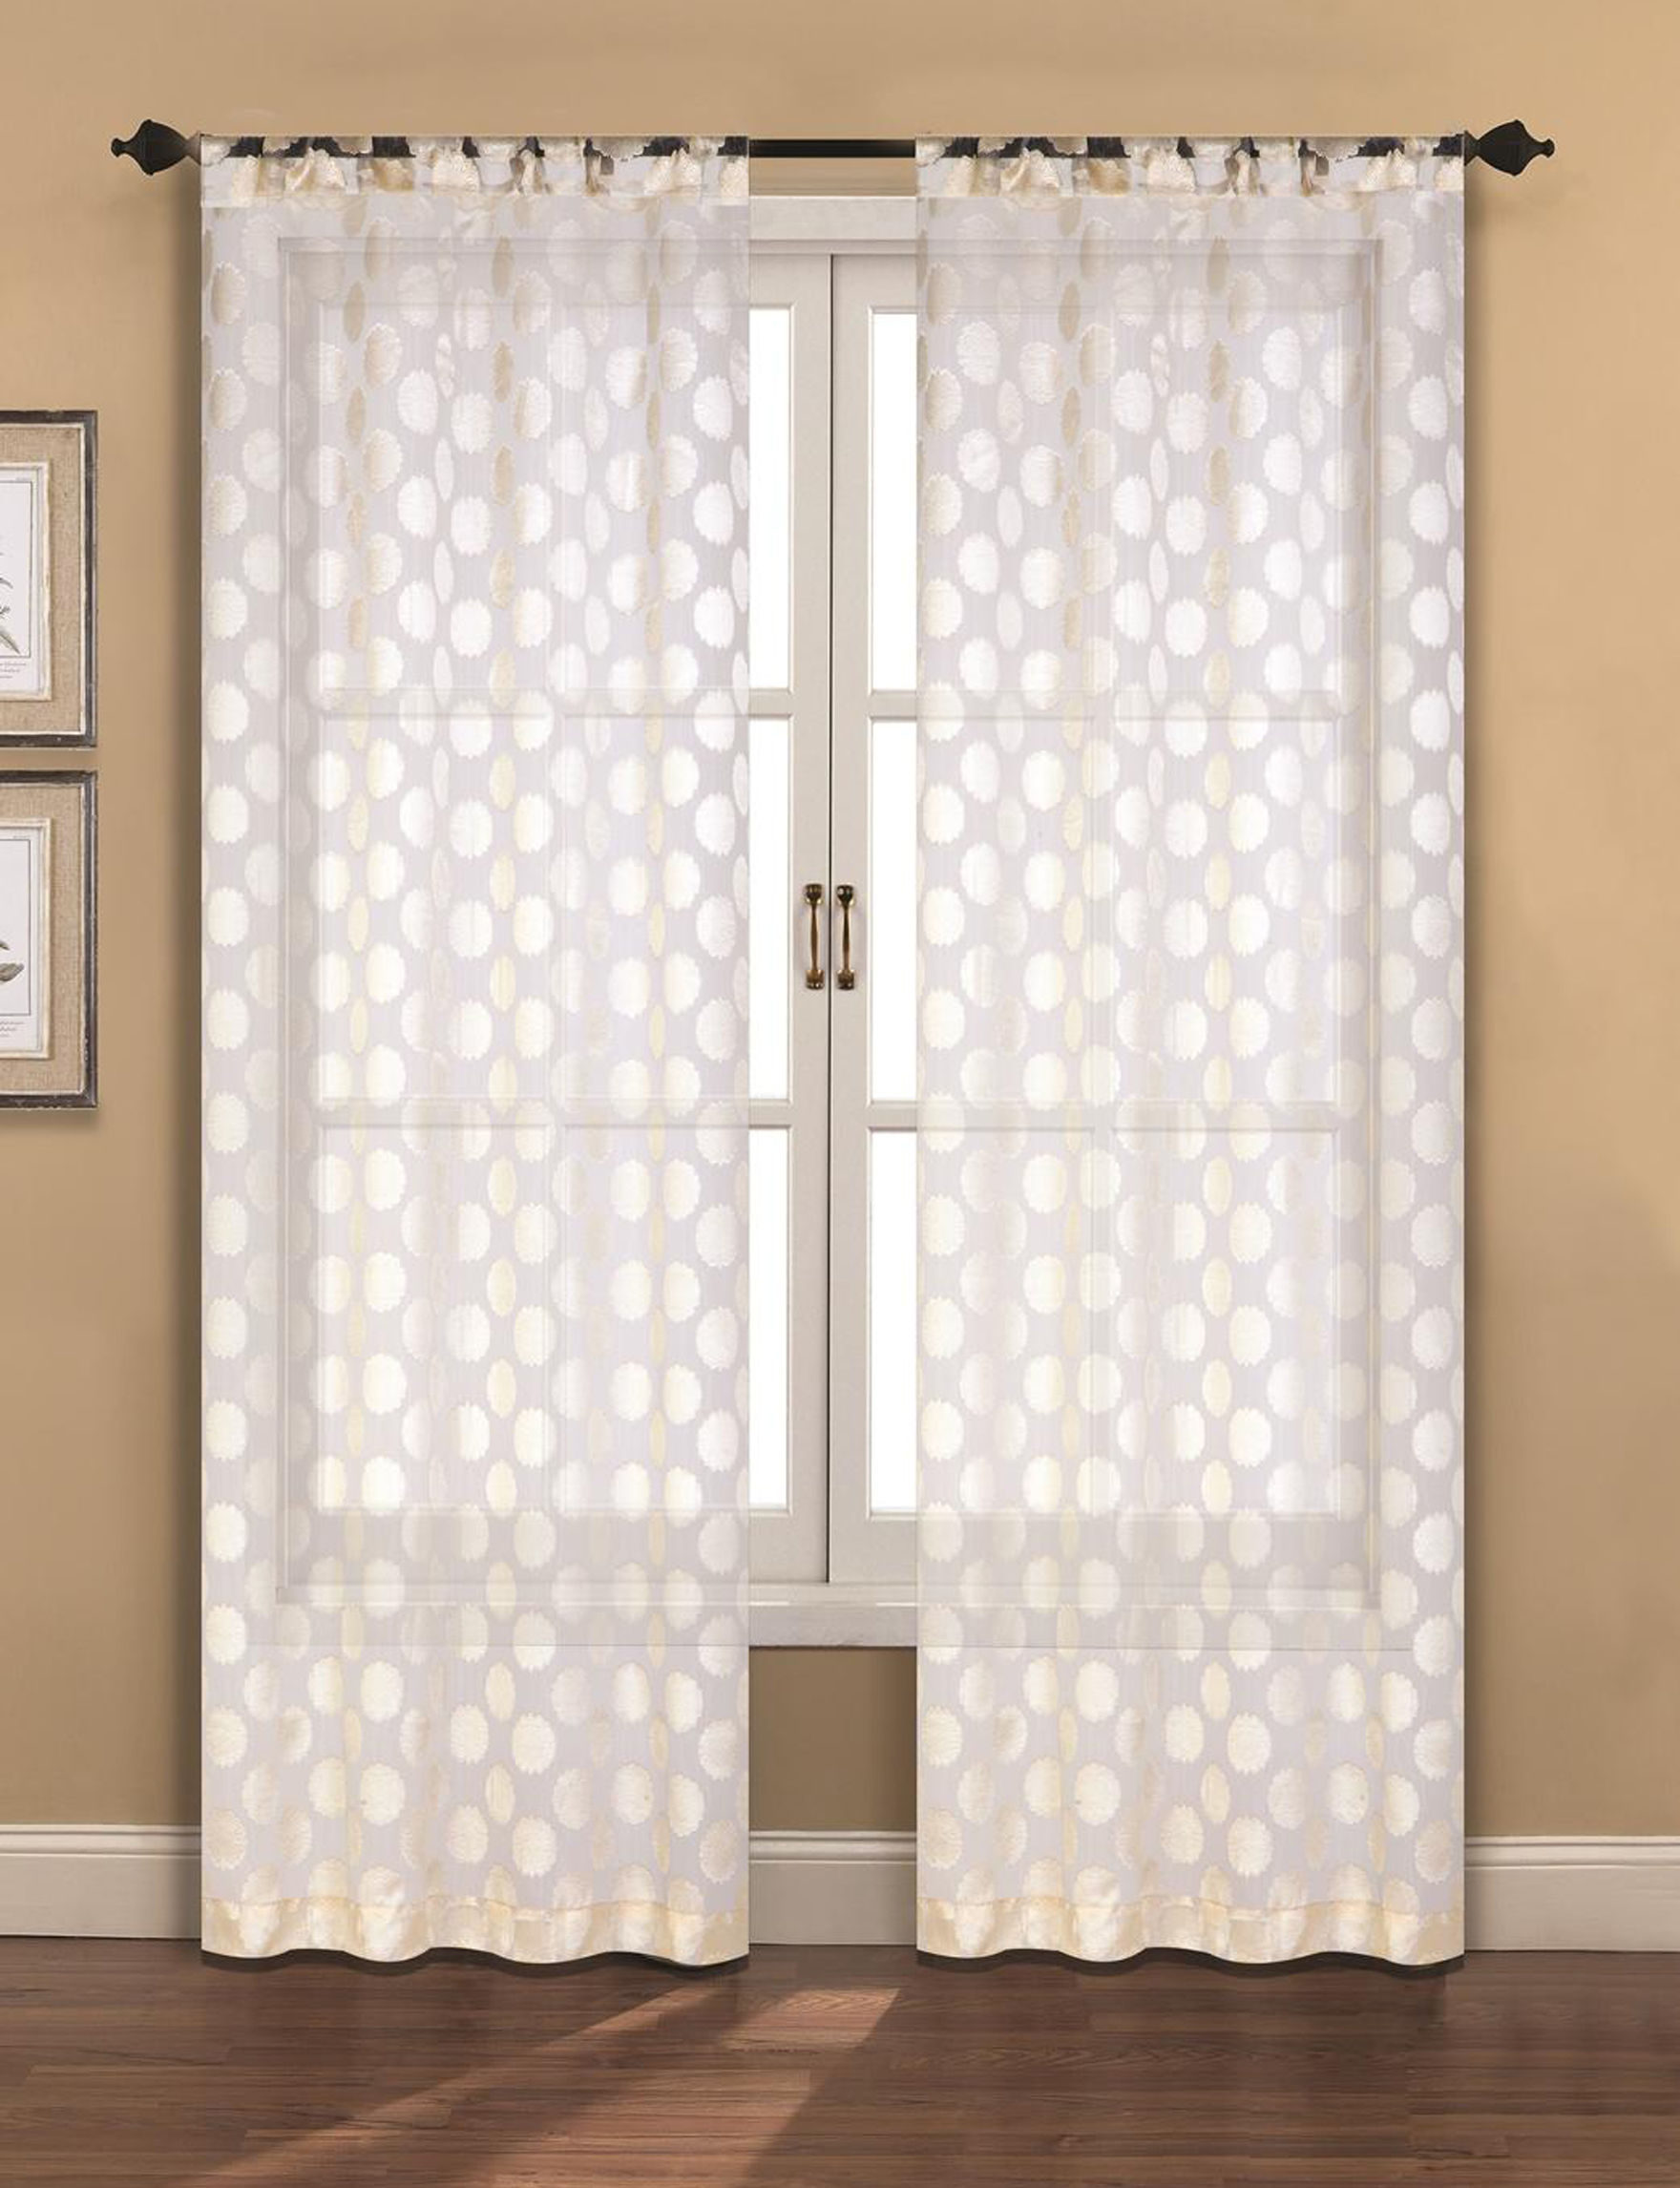 Devine Ivory Sheer Curtain Panel Set